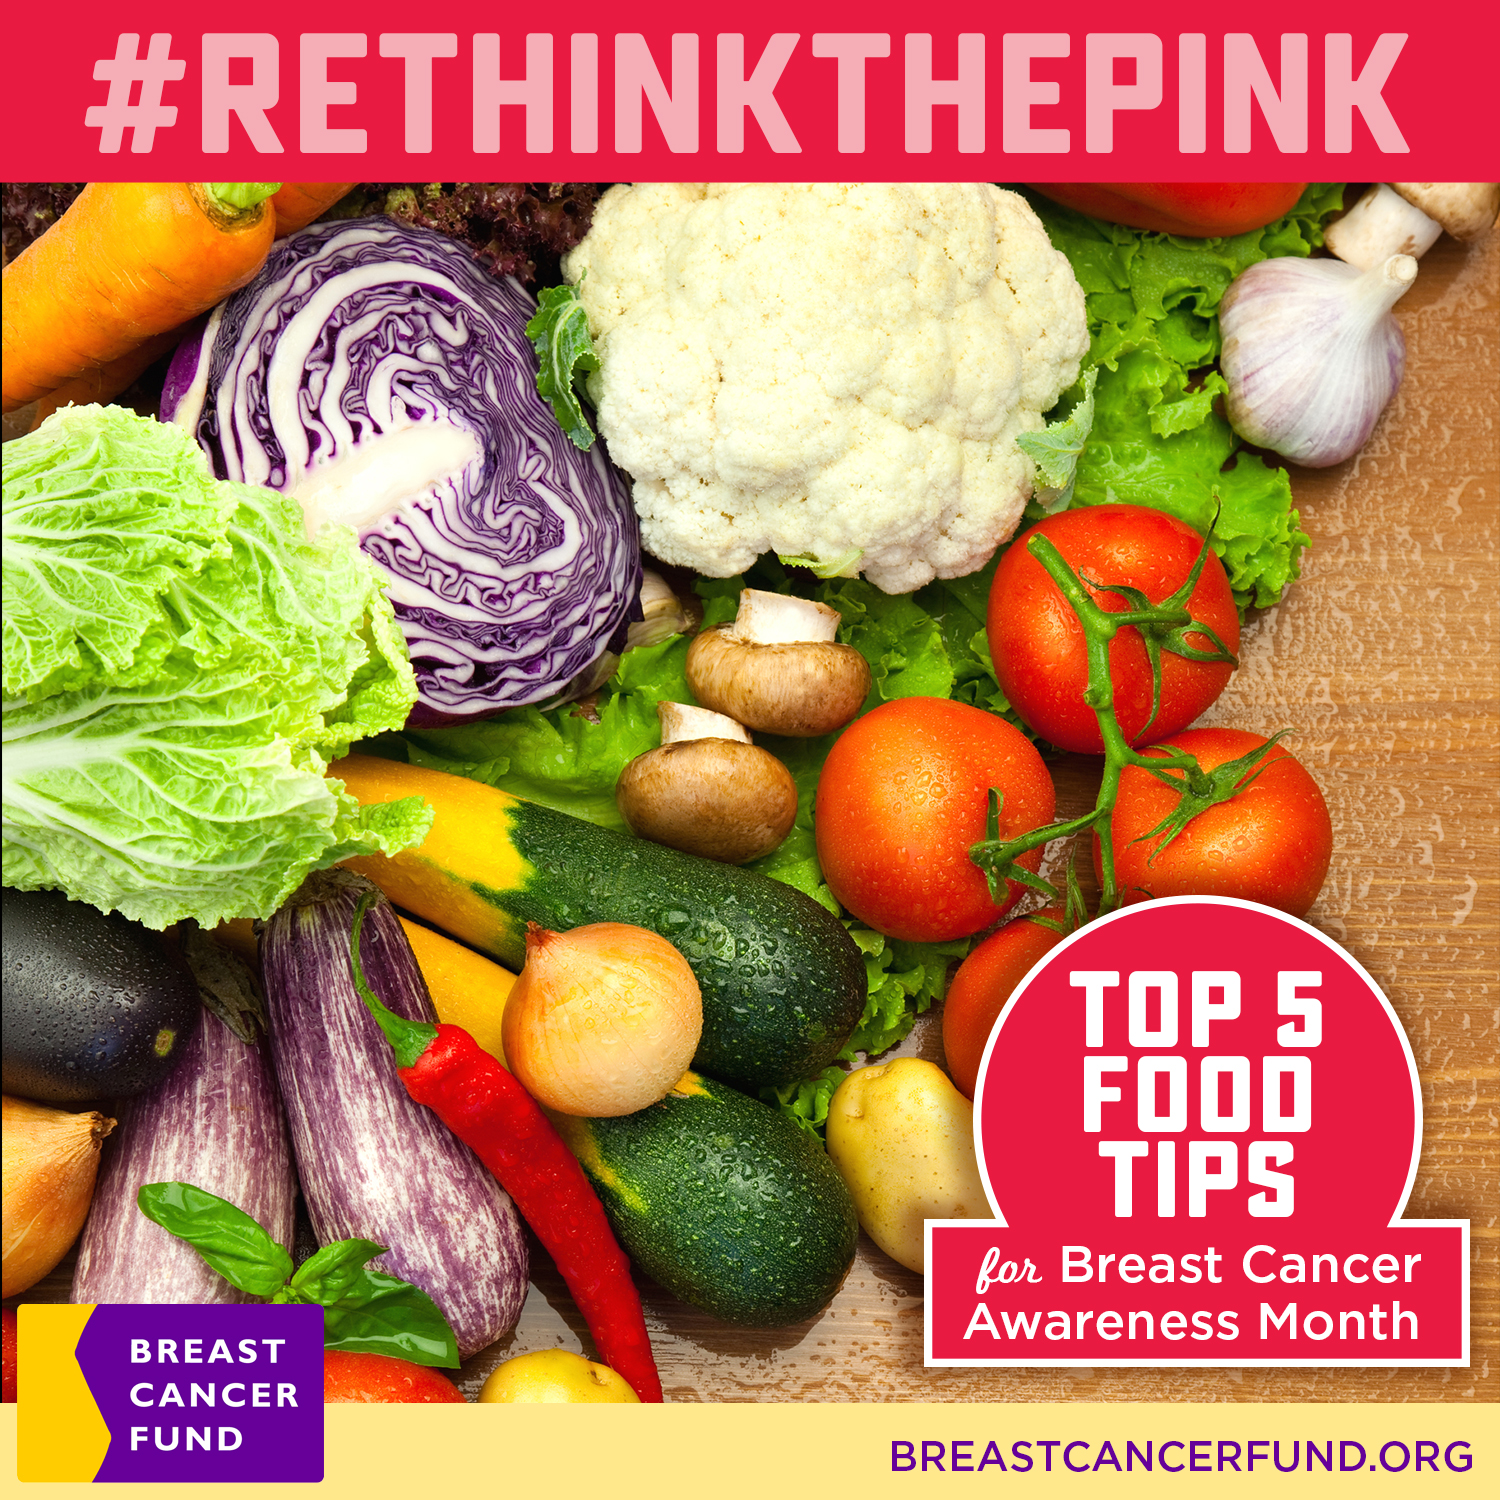 http://www.preventionstartshere.org/wp-content/uploads/2015/09/BCF_Top5FoodBreastCancerAwareness_1.jpg